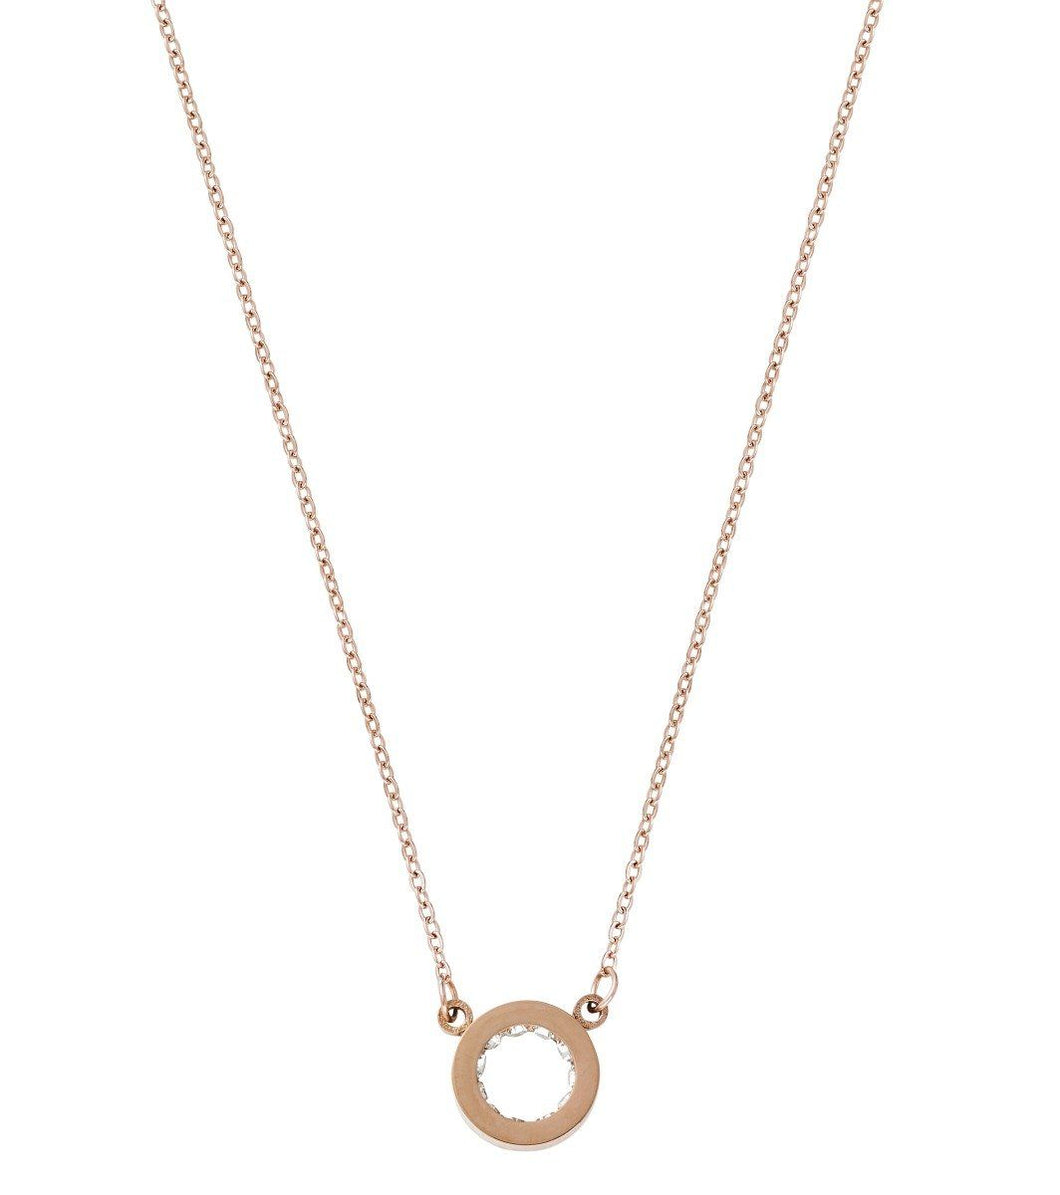 MONACO NECKLACE MINI ROSE GOLD